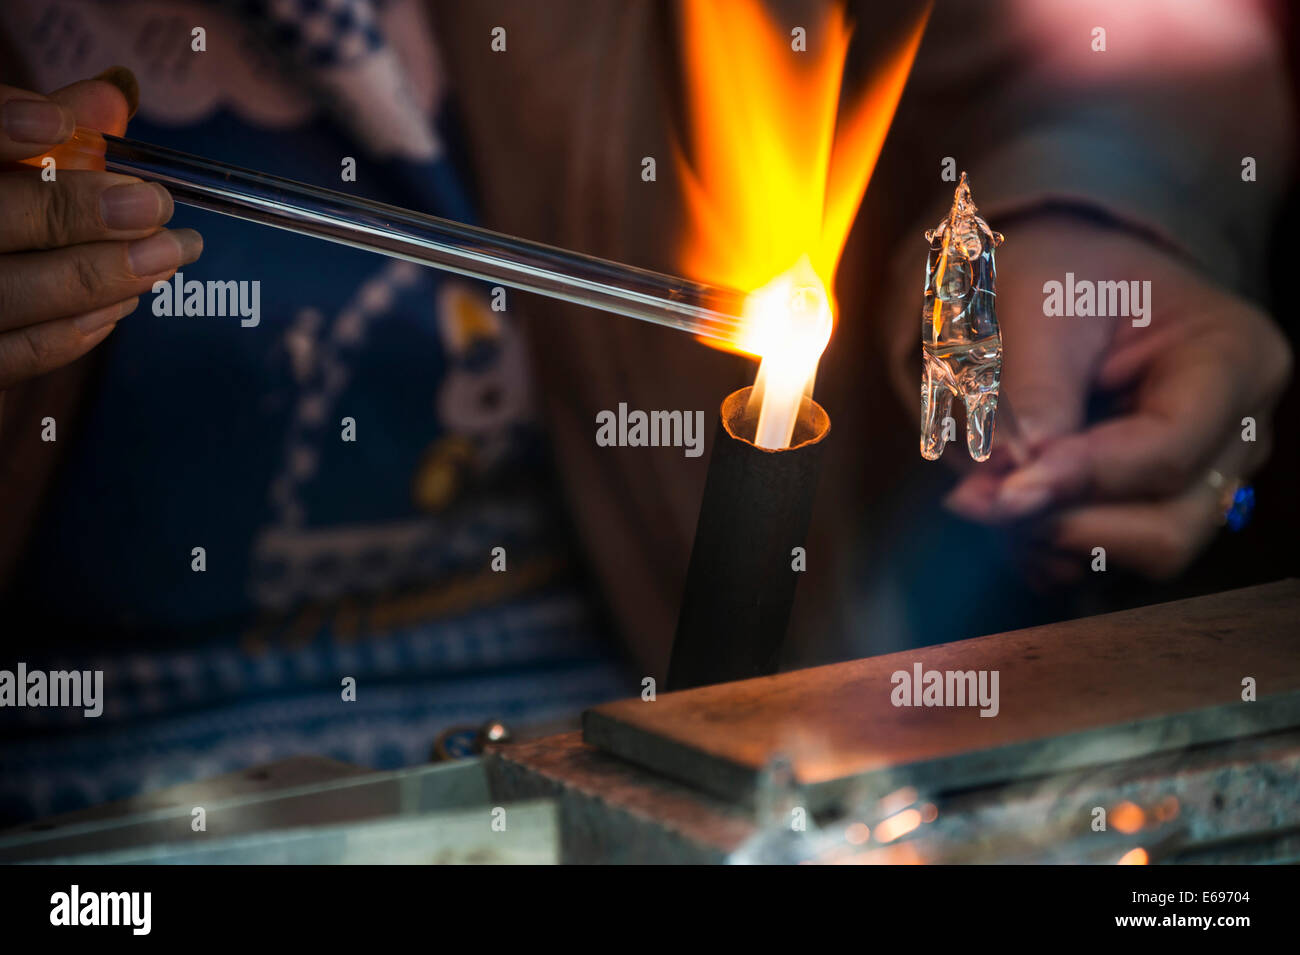 Glassblower working on a glass figure with a flame, Wuzhen, Zhejiang province, China - Stock Image